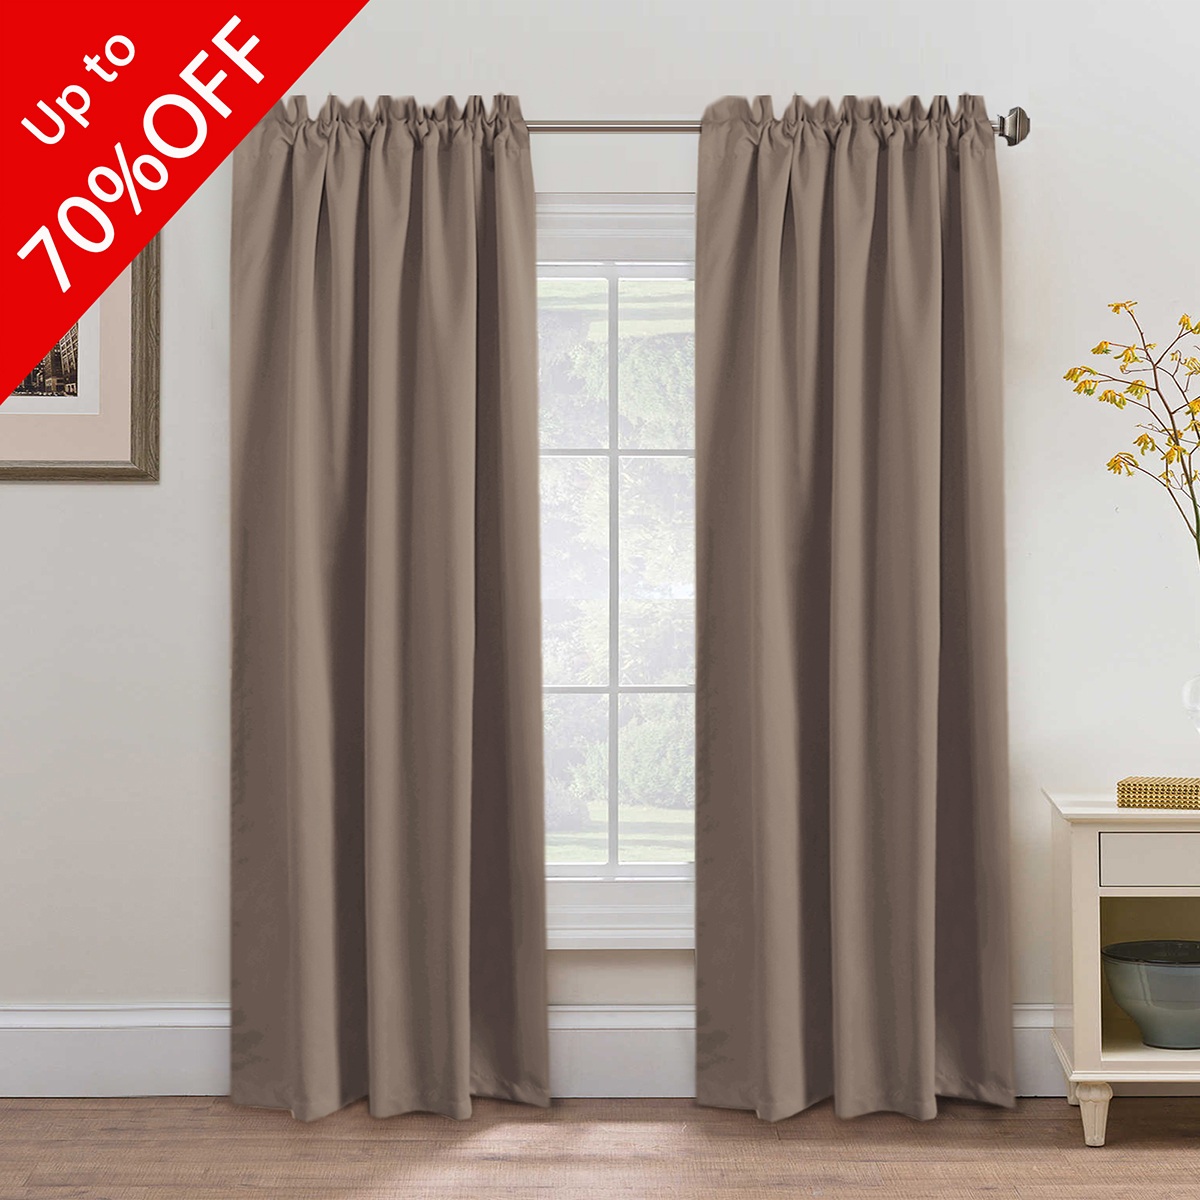 Blackout Thermal Insulated Curtains Drapes Back Tab Rod Pocket